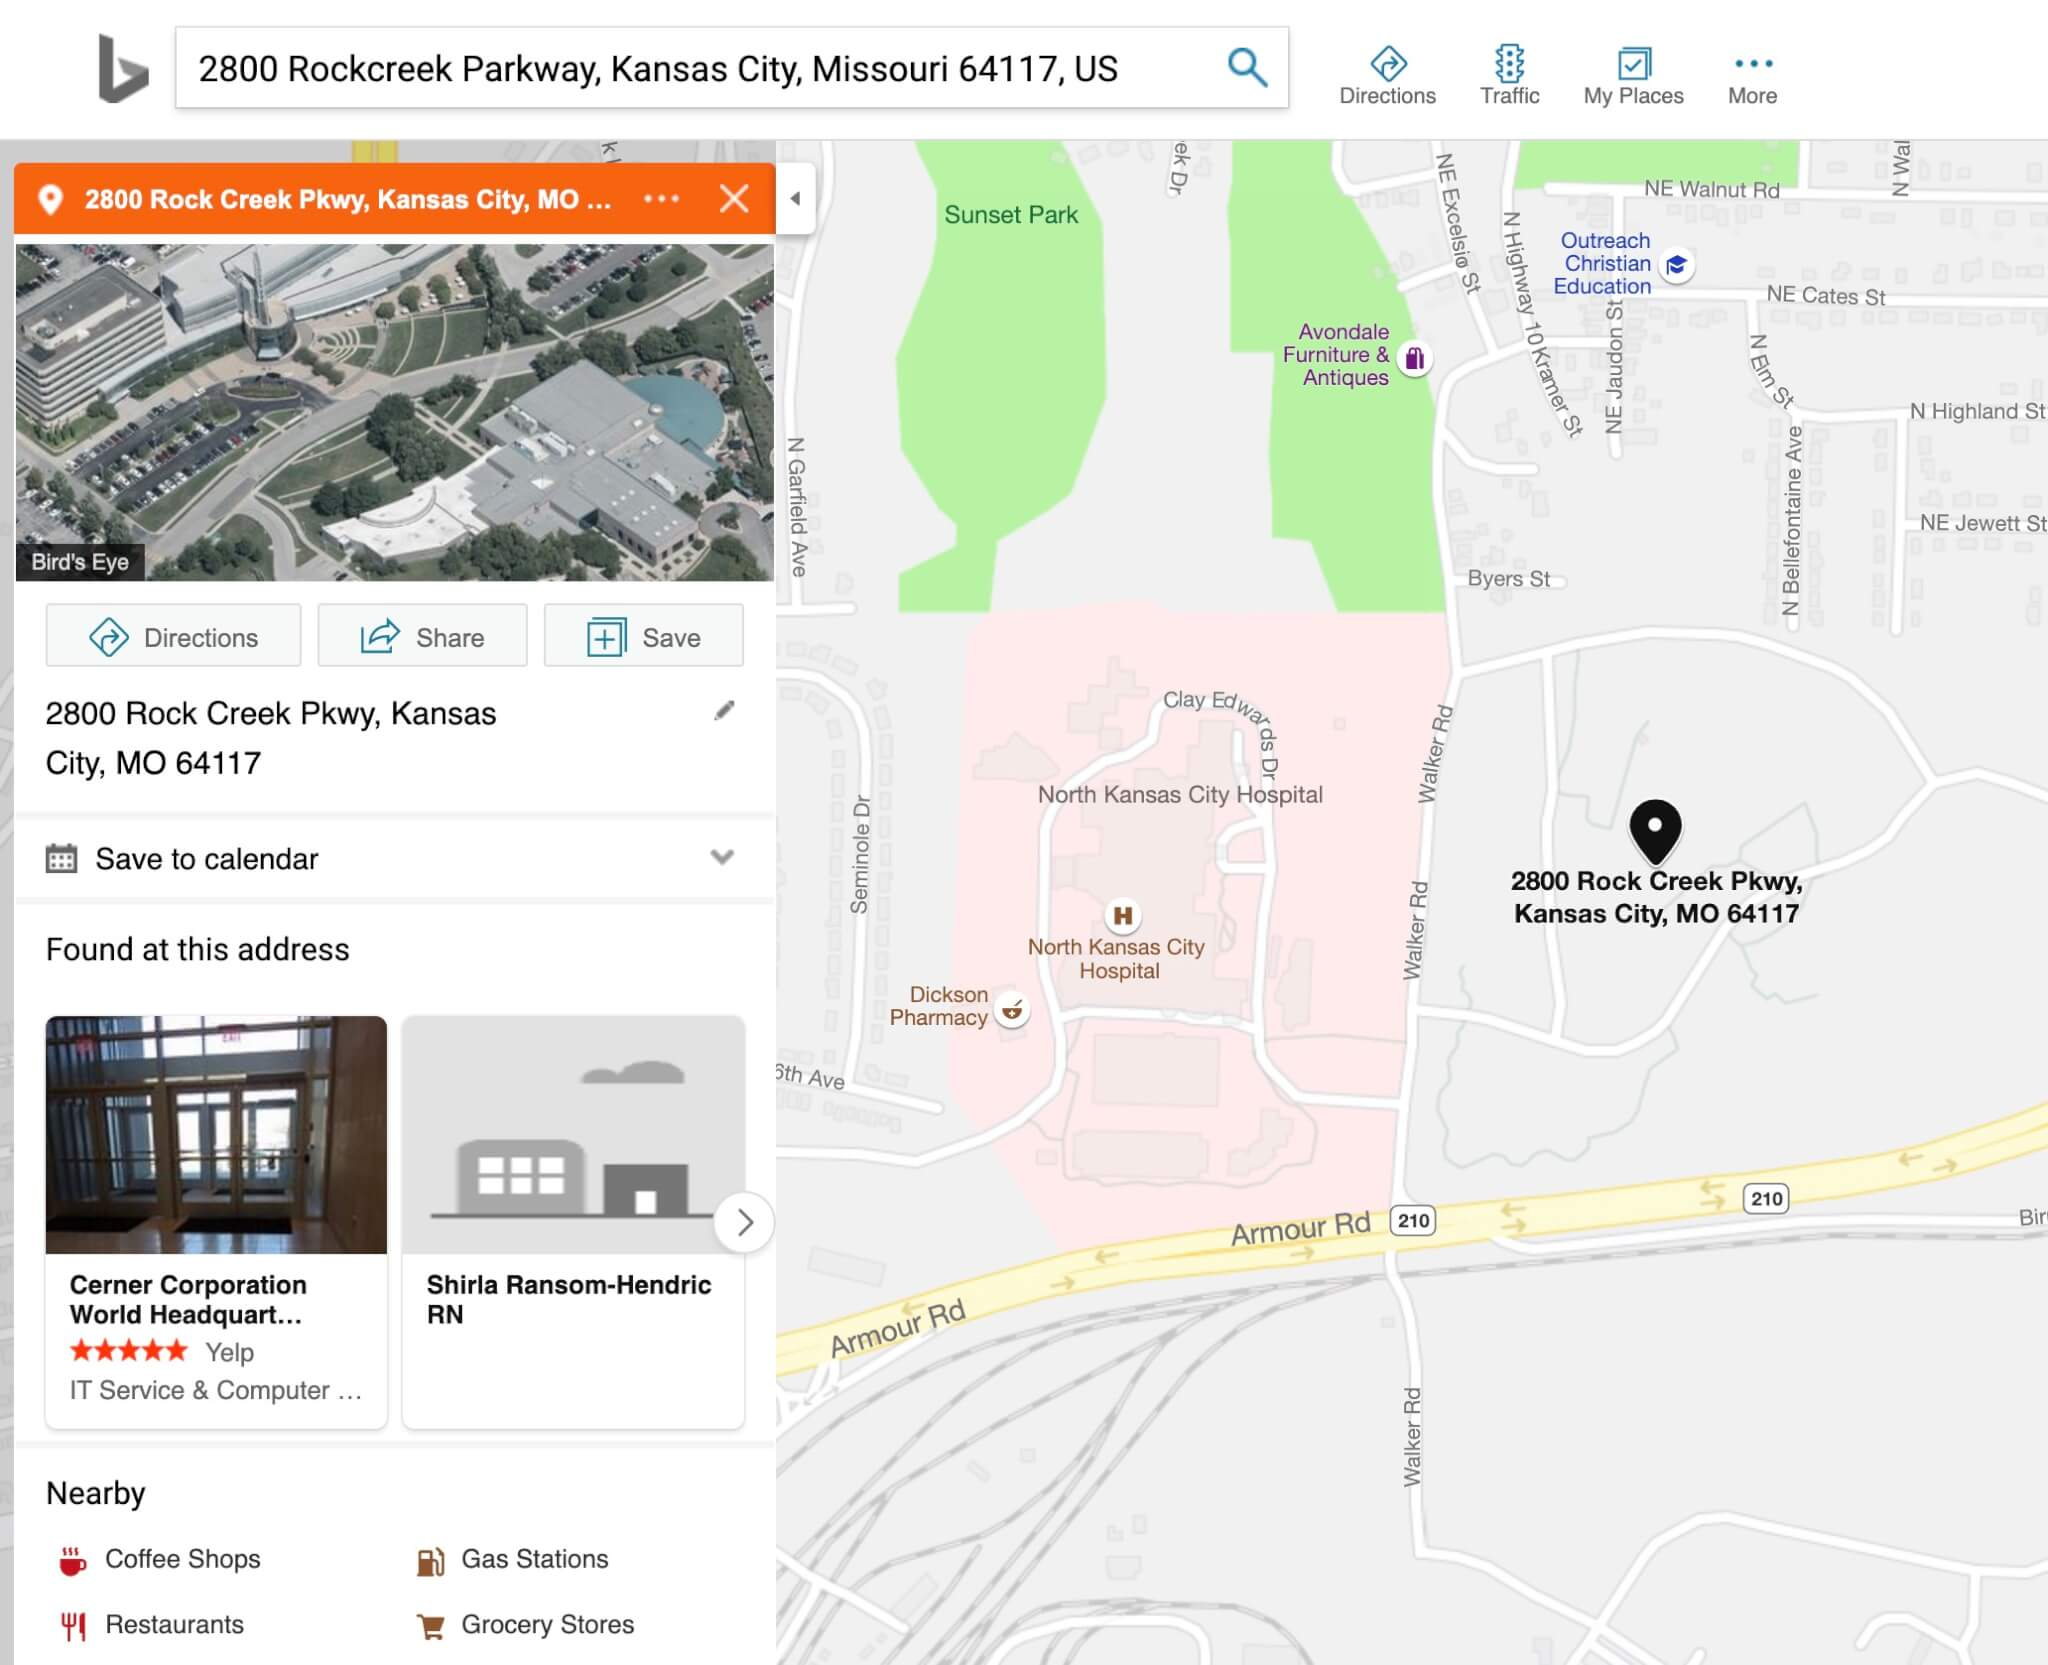 Linkedin company pages use Bing Maps